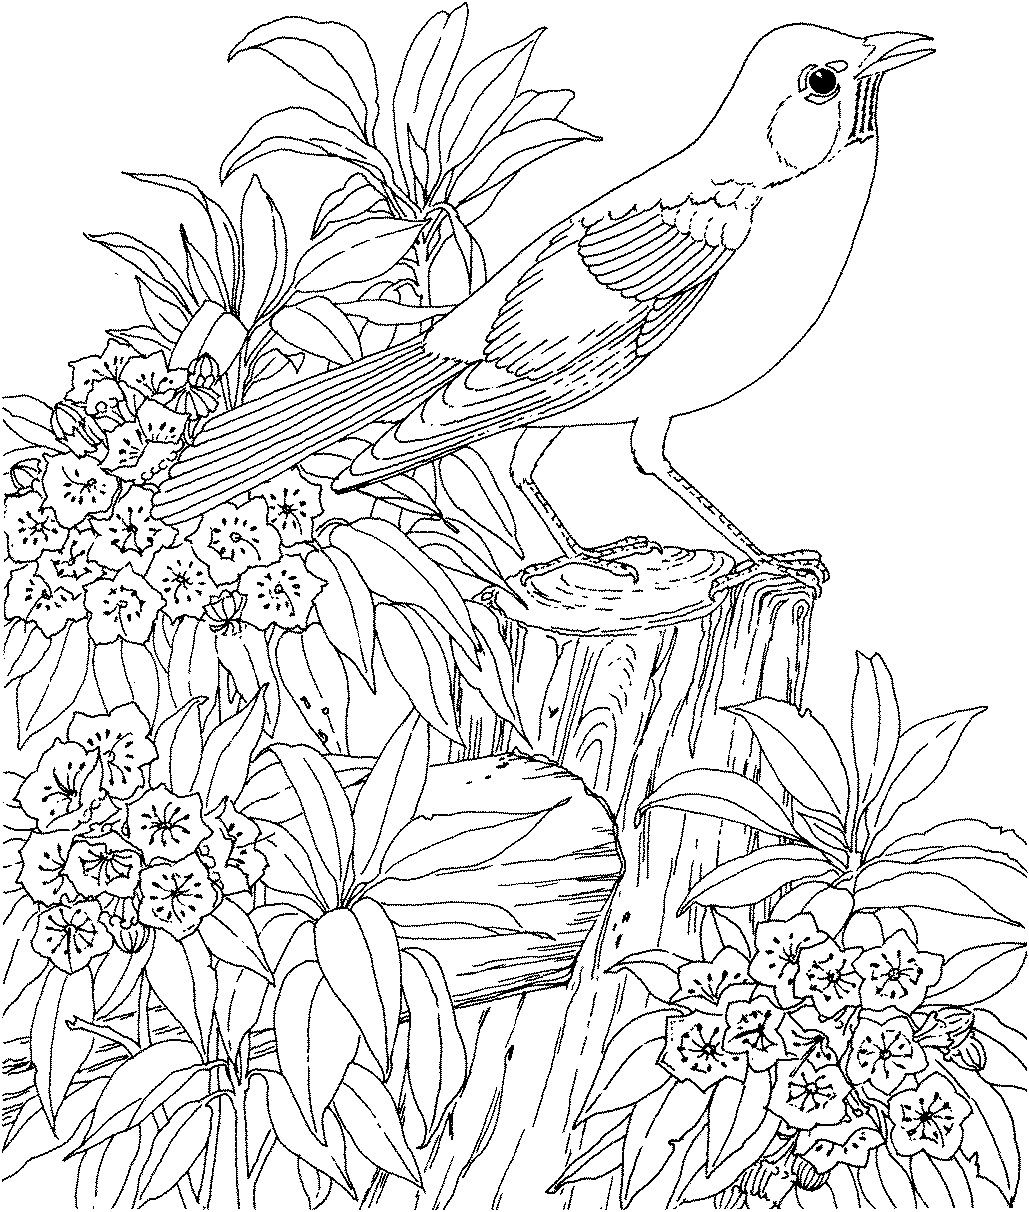 colouring page birds - Google Search | Colouring Pages | Pinterest ...